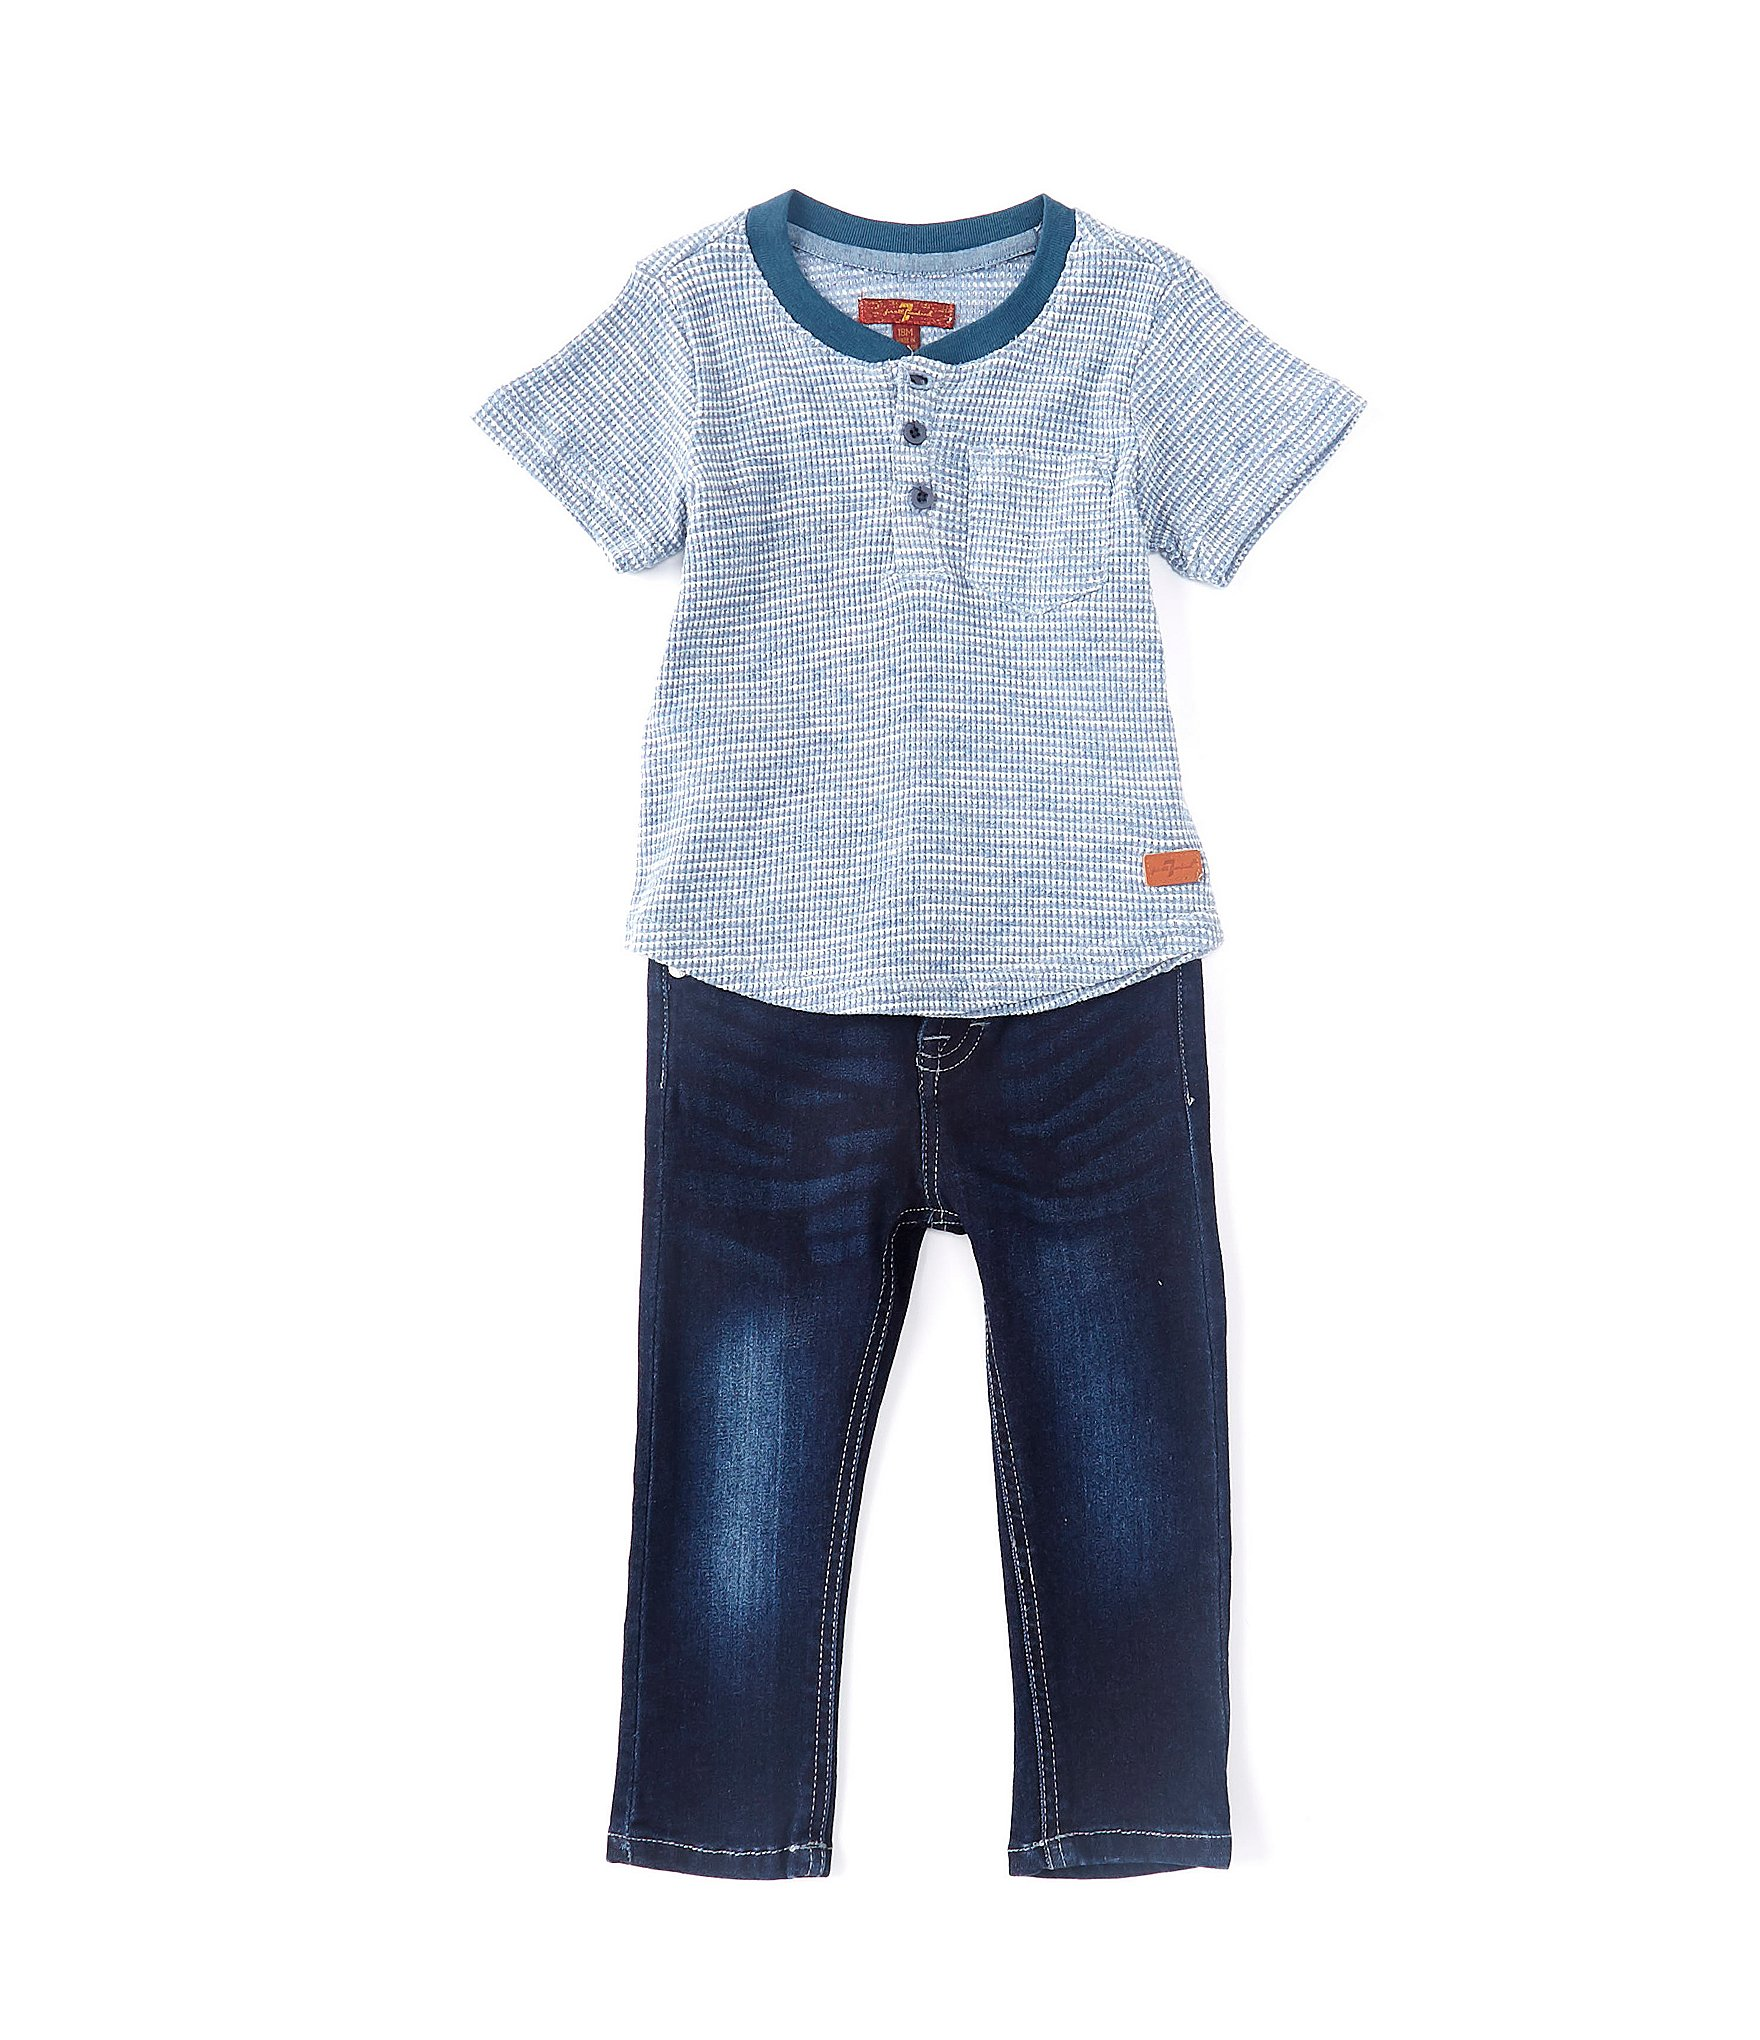 canto Rafflesia Arnoldi Proceso  7 for all mankind Baby Boys 12-24 Months Short-Sleeve Henley Tee & Denim  Jean Set | Dillard's